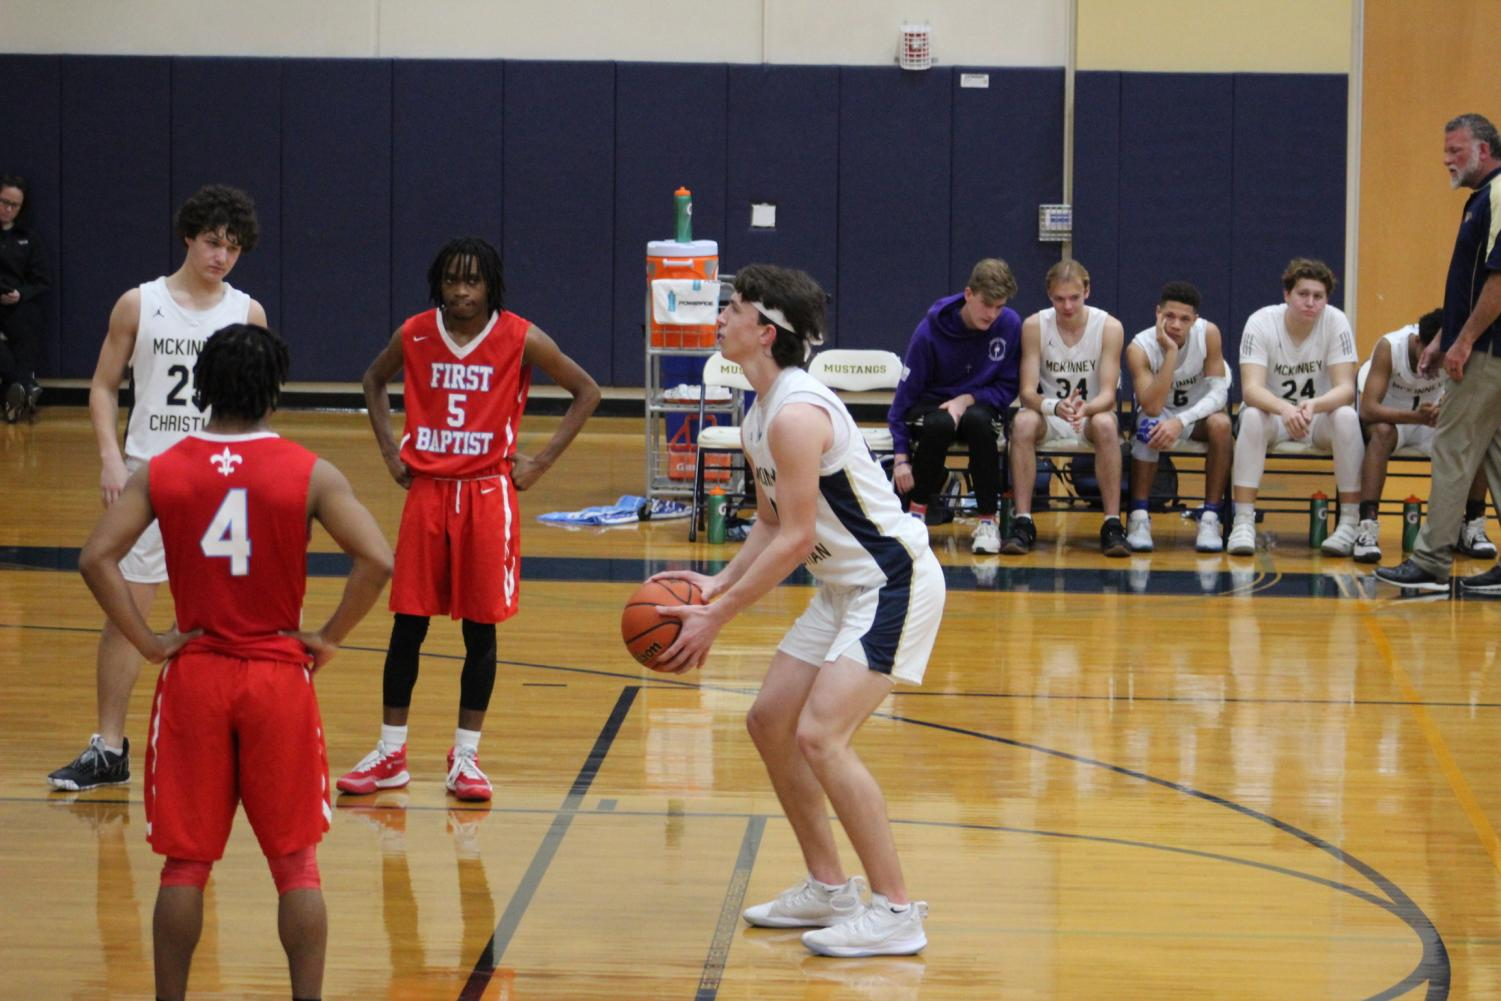 Junior Blake McGraw heads to the line to shoot two during the second half of the basketball game against First Baptist.